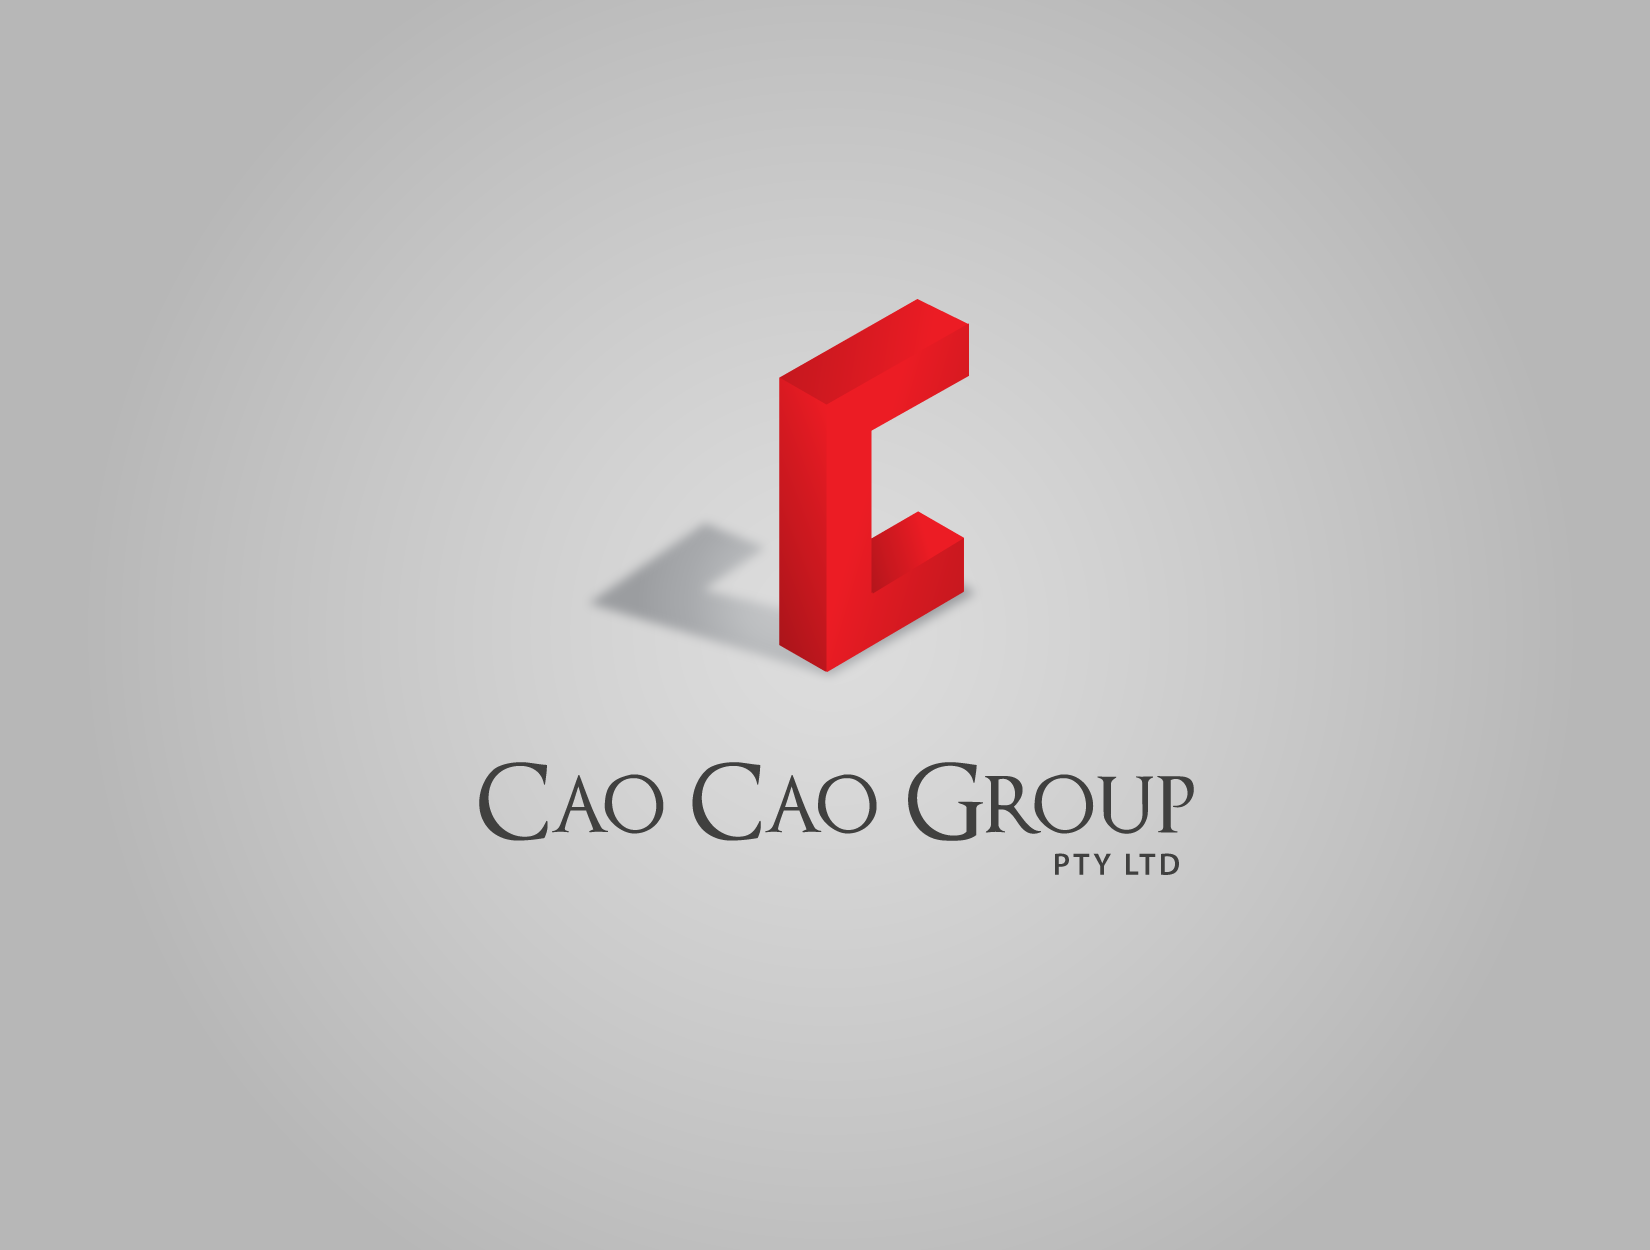 Logo Design by funkeekhan - Entry No. 207 in the Logo Design Contest cao cao group pty ltd Logo Design.